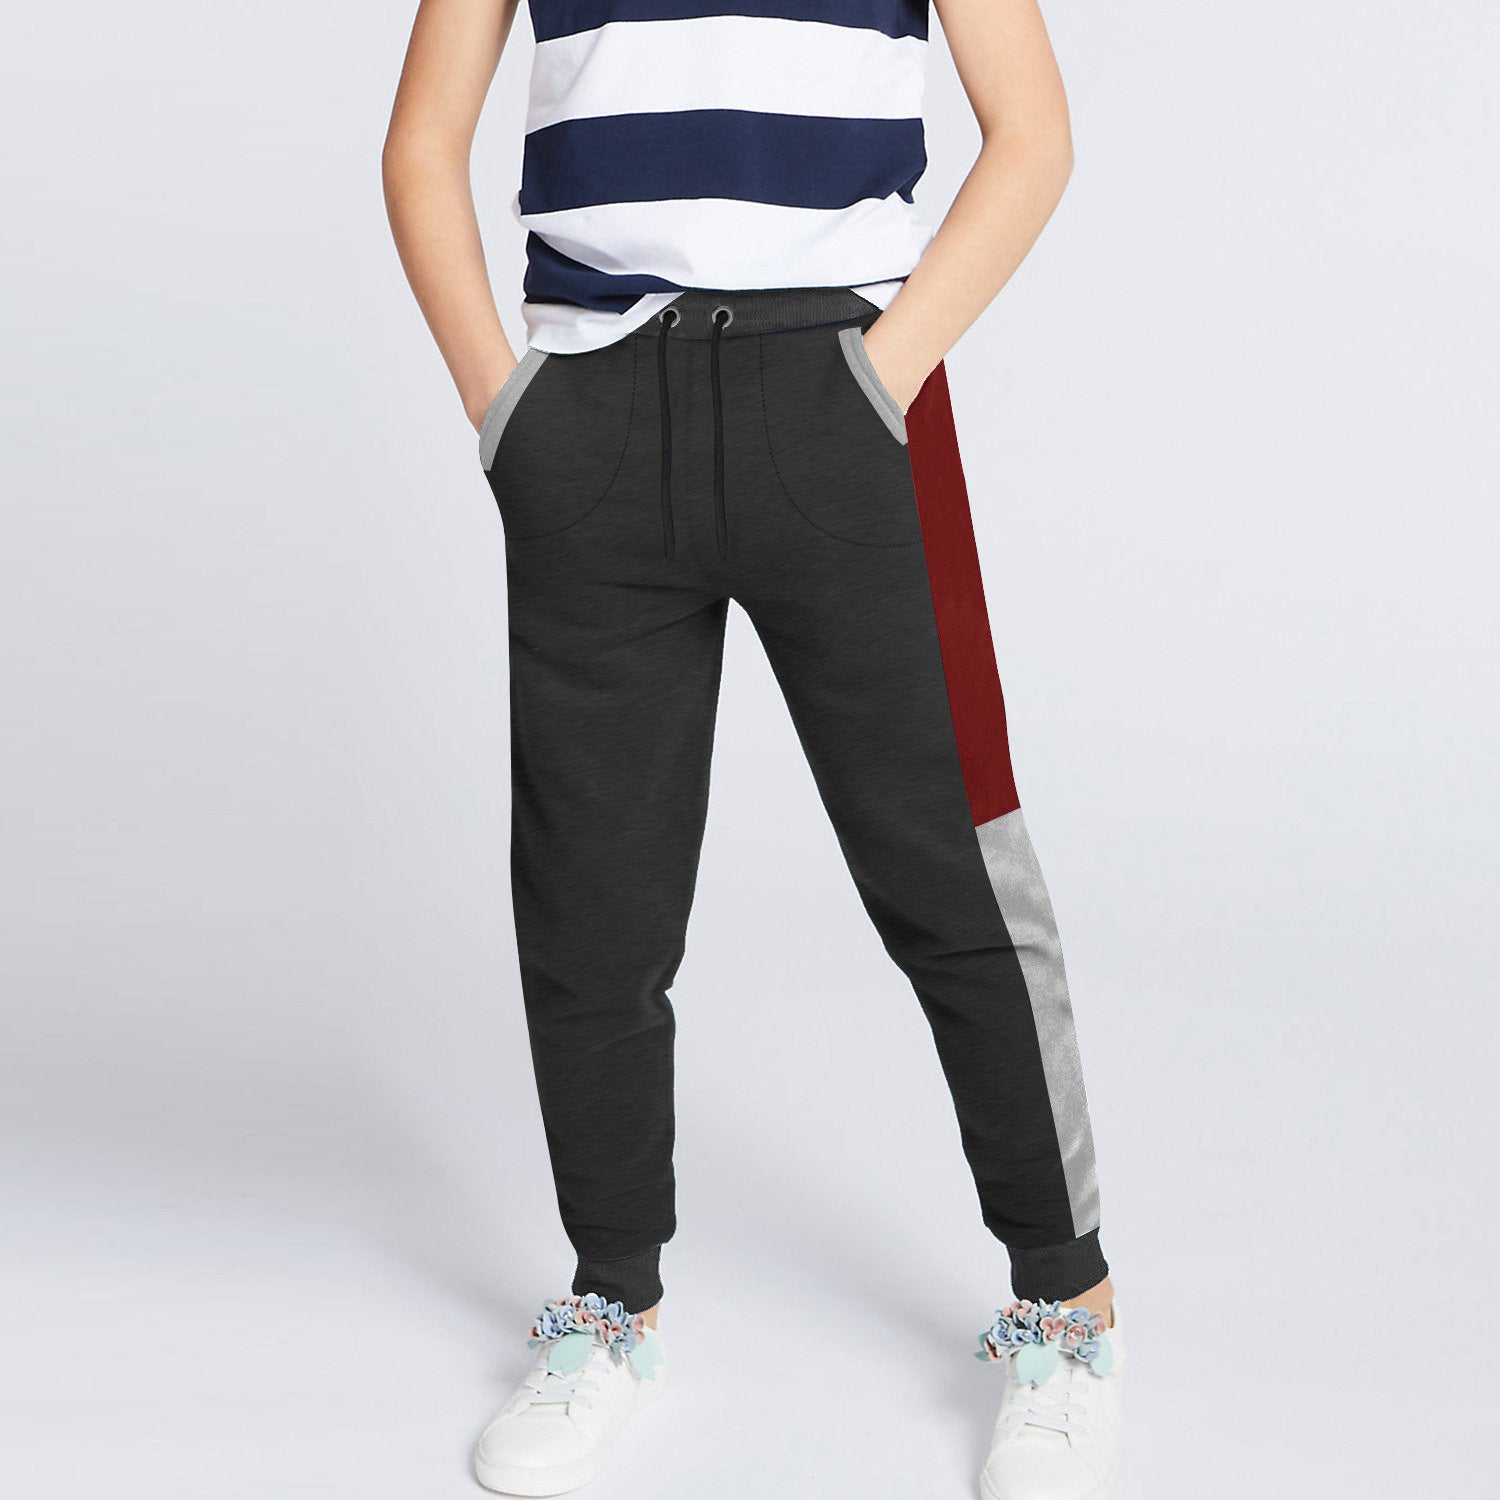 Next Slim Fit Jogger Trouser For Kids-Charcoal with Red & Grey Melange Panels-SP2594